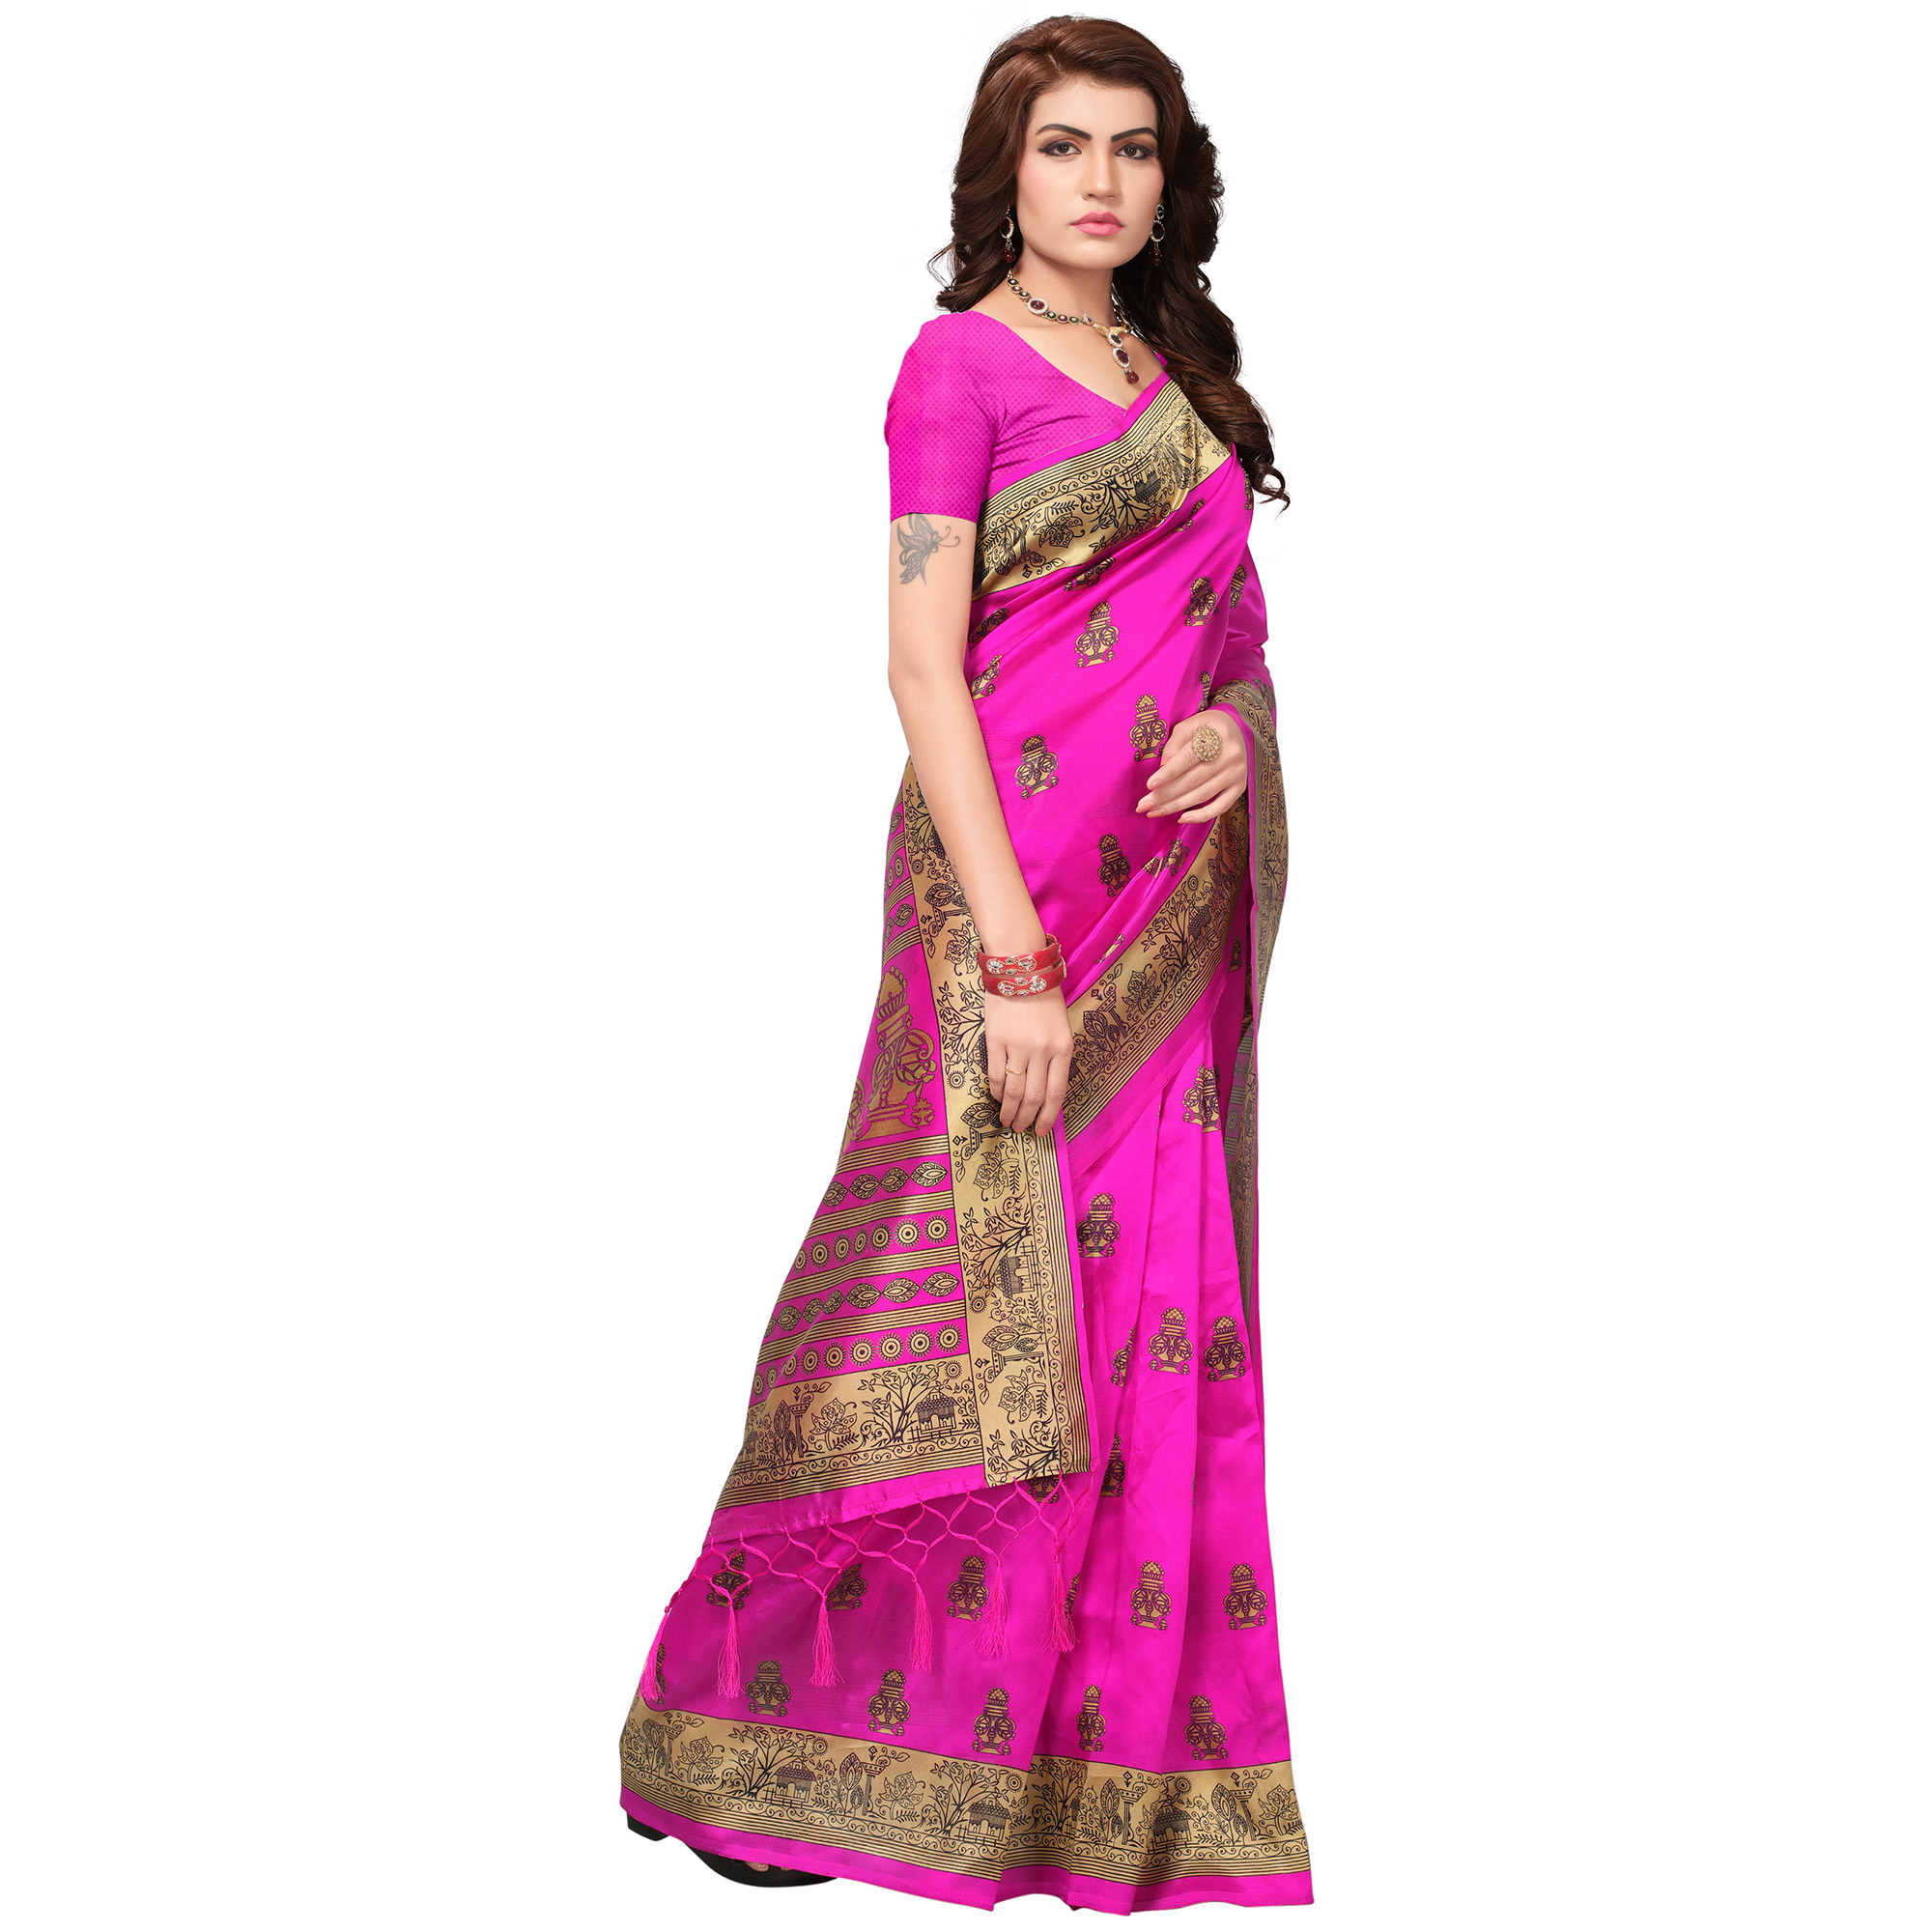 Impressive Pink Colored Festive Wear Printed Mysore Art Silk Saree